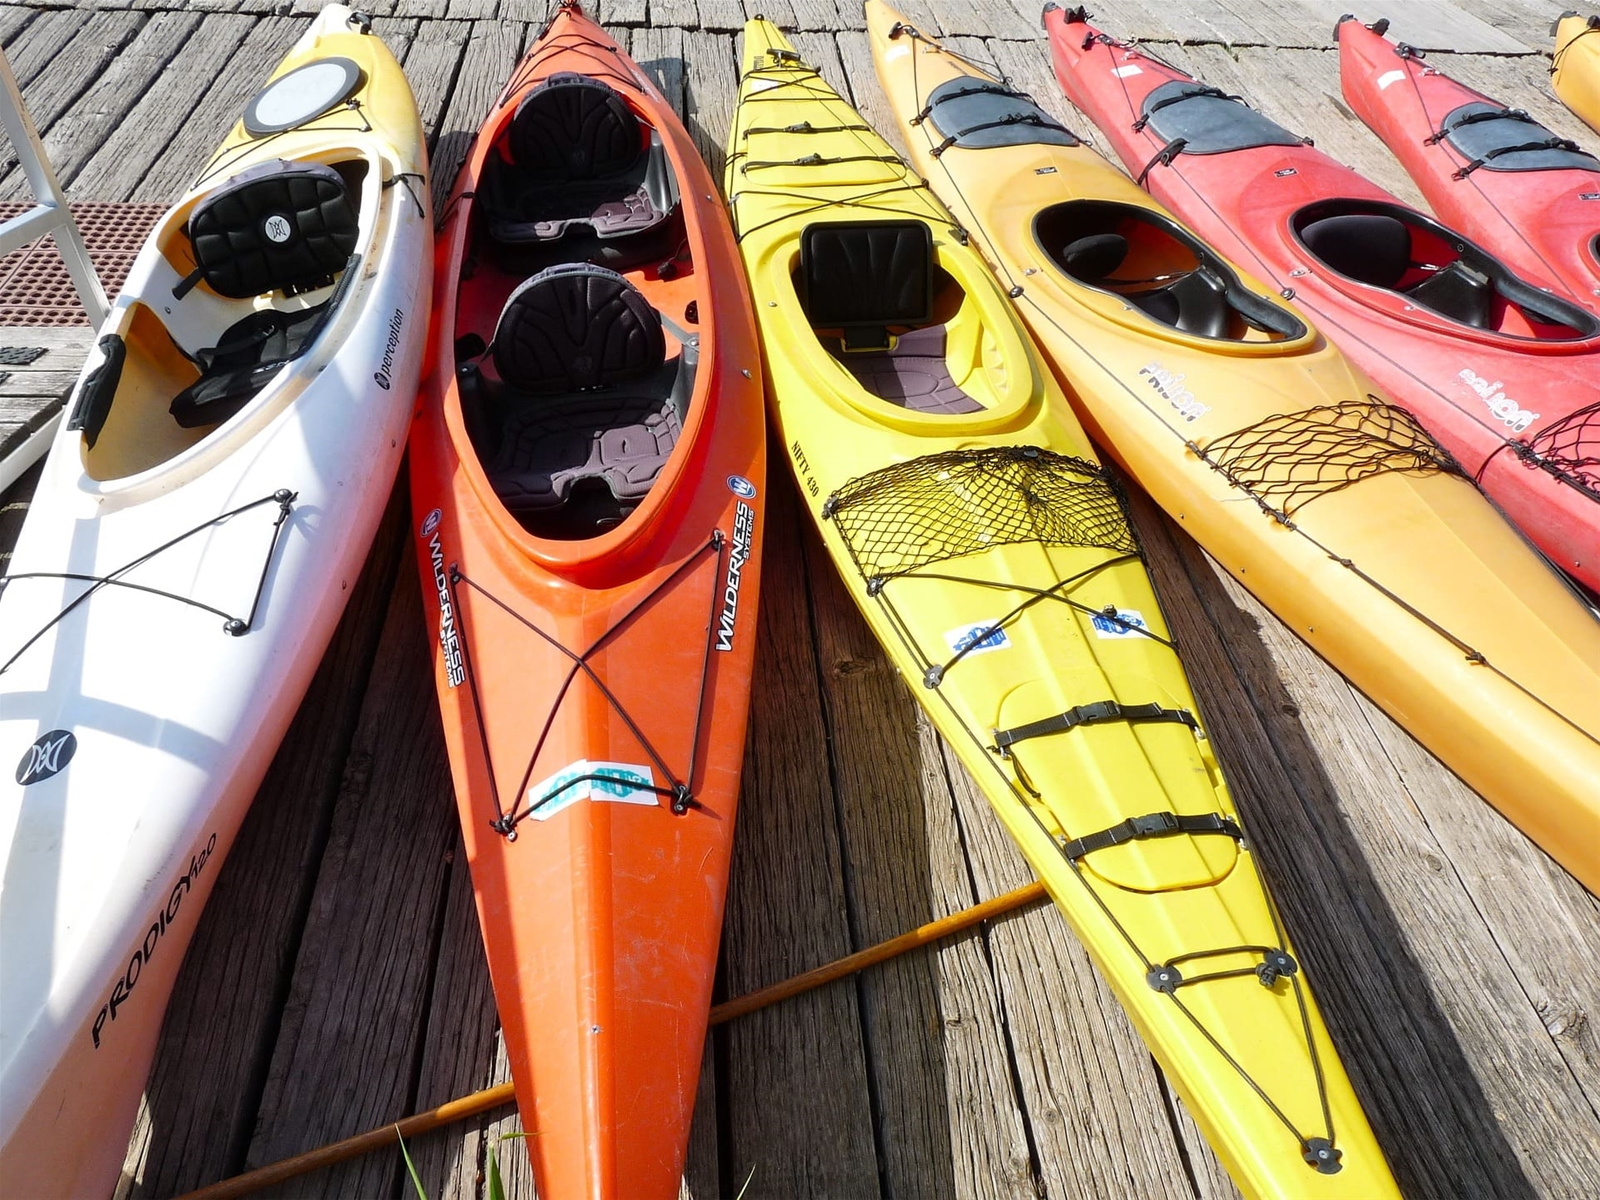 Kayaking in Perdido Key - Perdido Key Acitivites